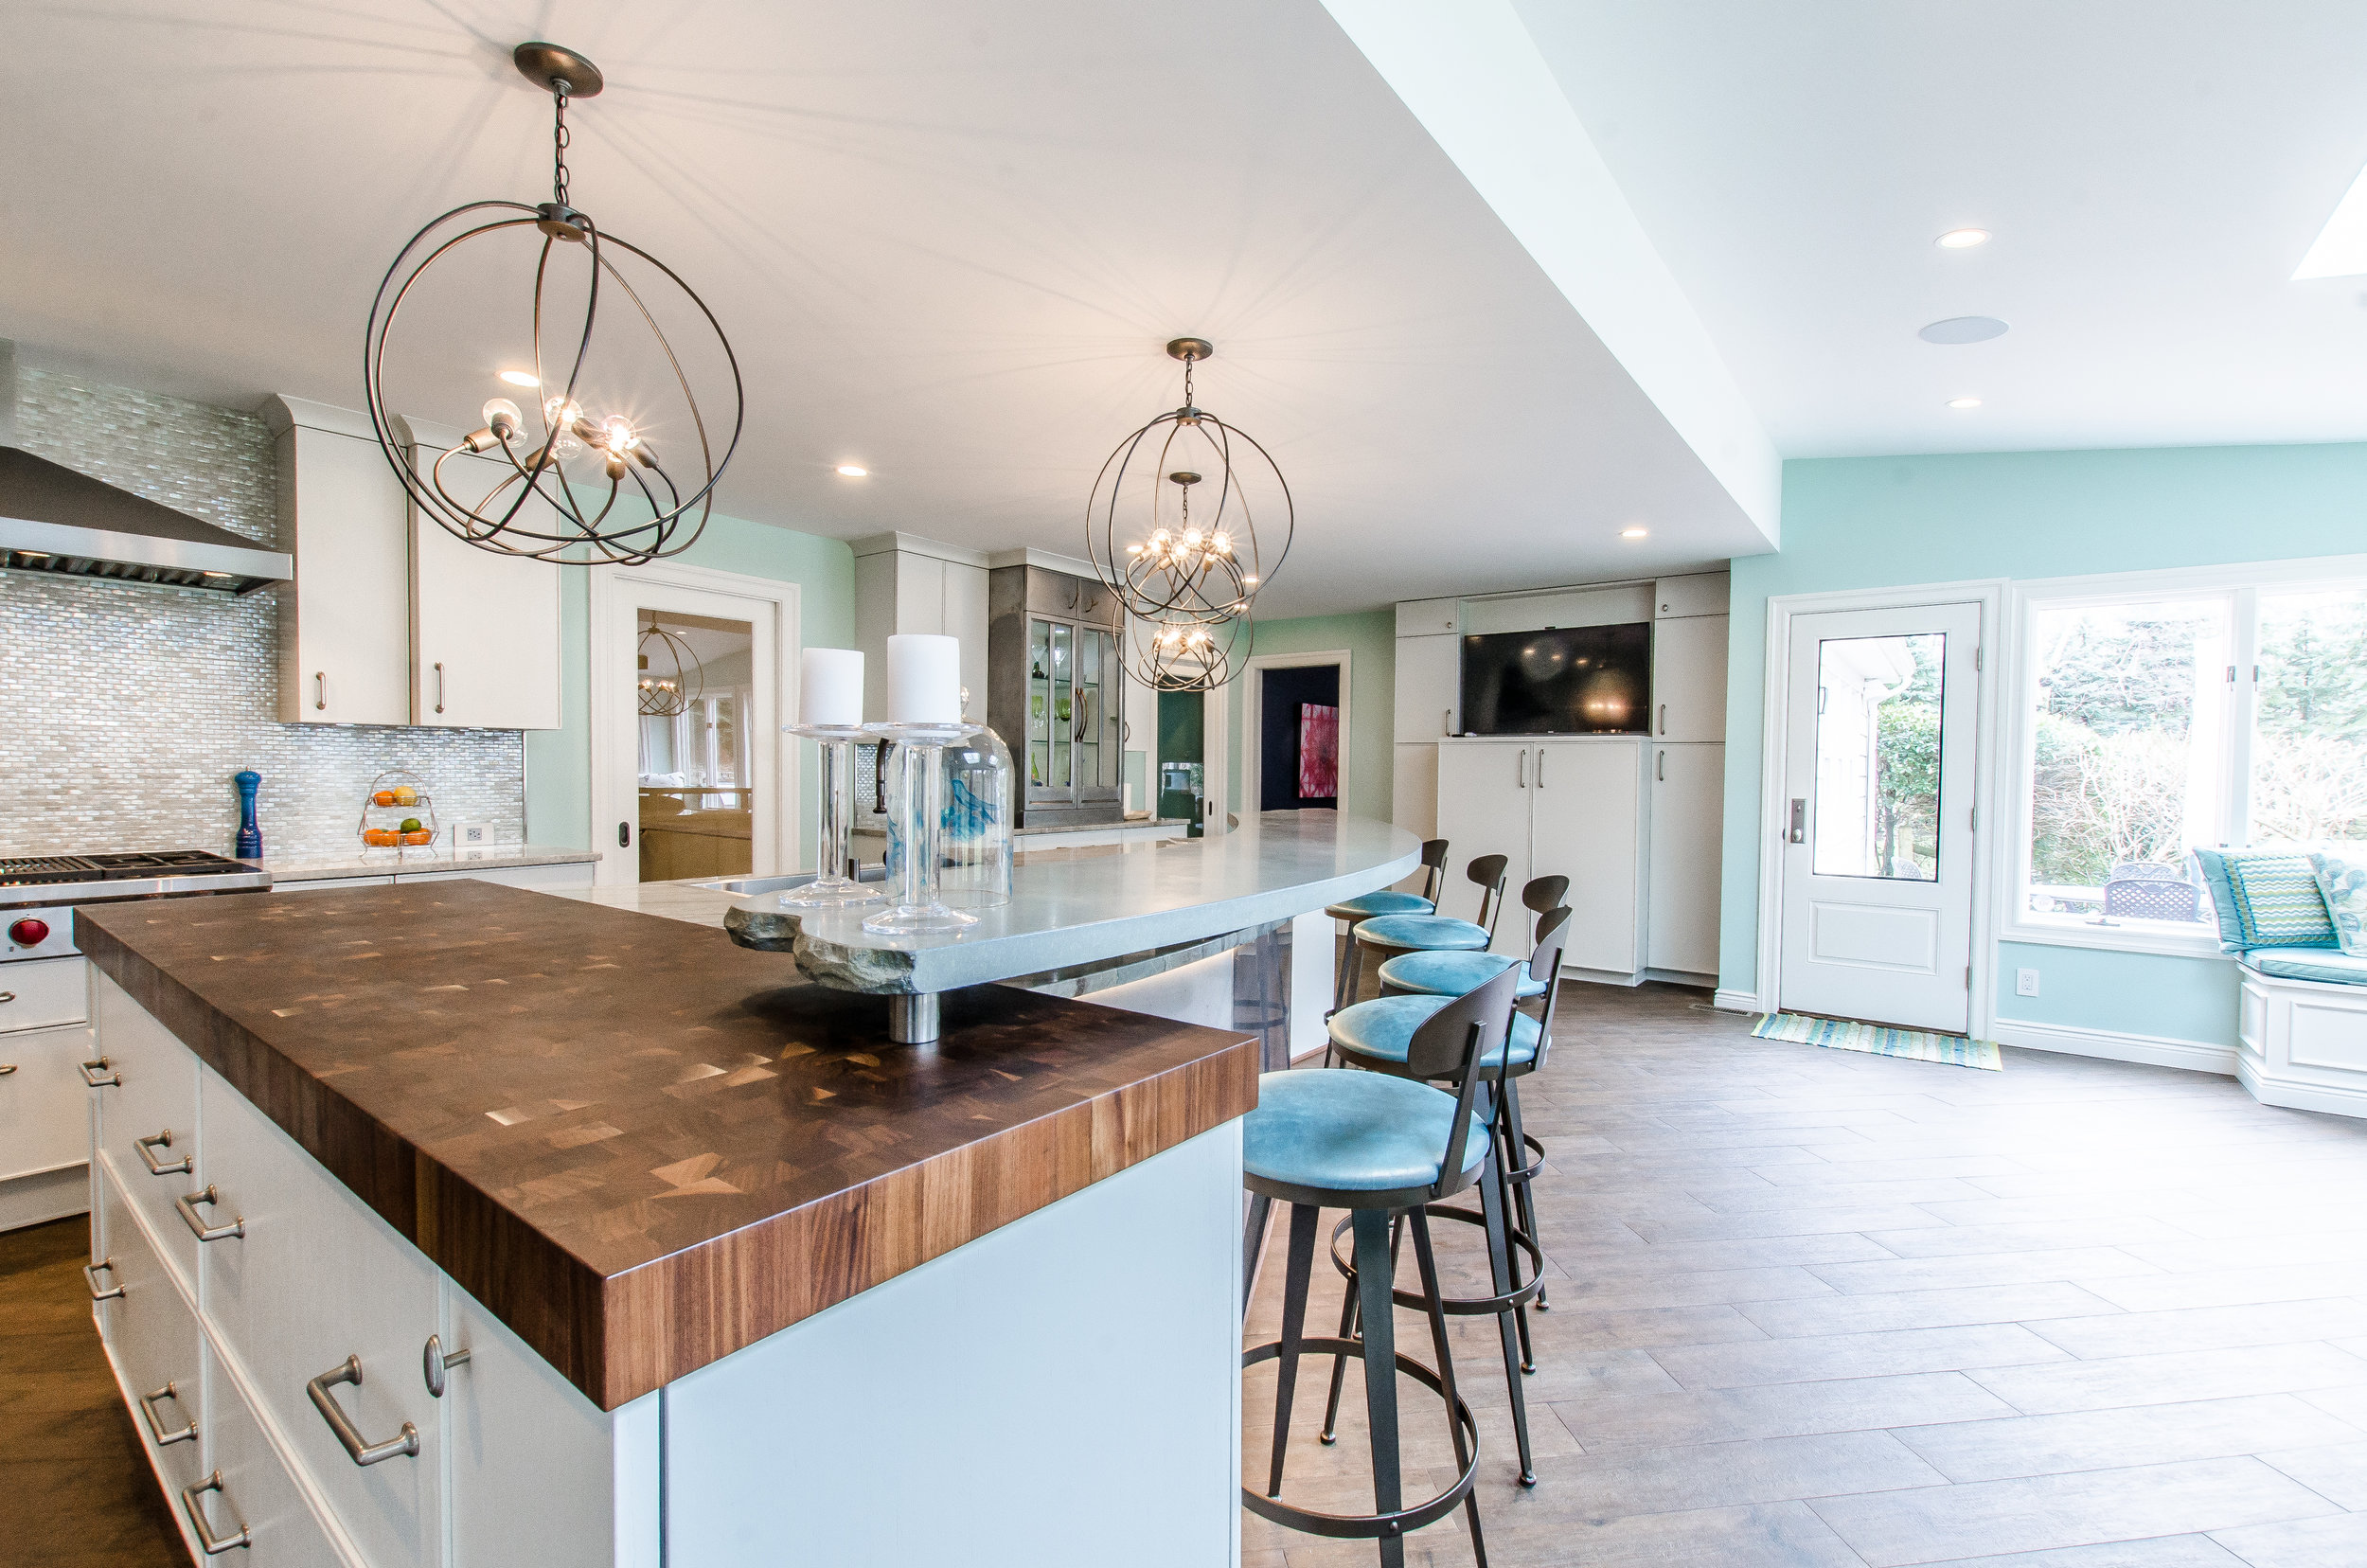 Armonk kitchen 3.jpg